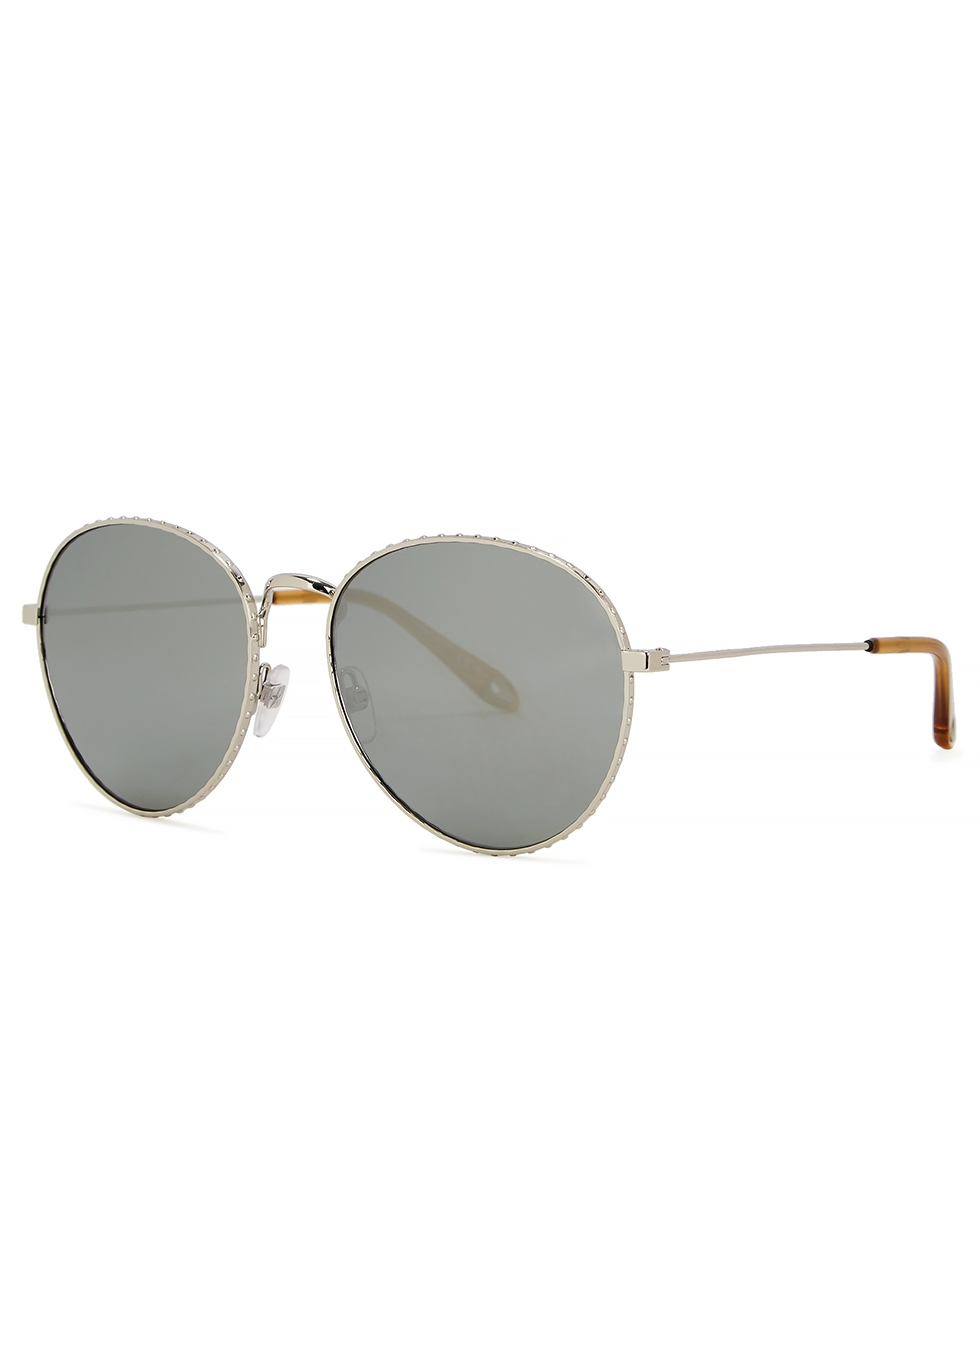 GIVENCHY   Givenchy Silver-Tone Oval-Frame Sunglasses   Goxip